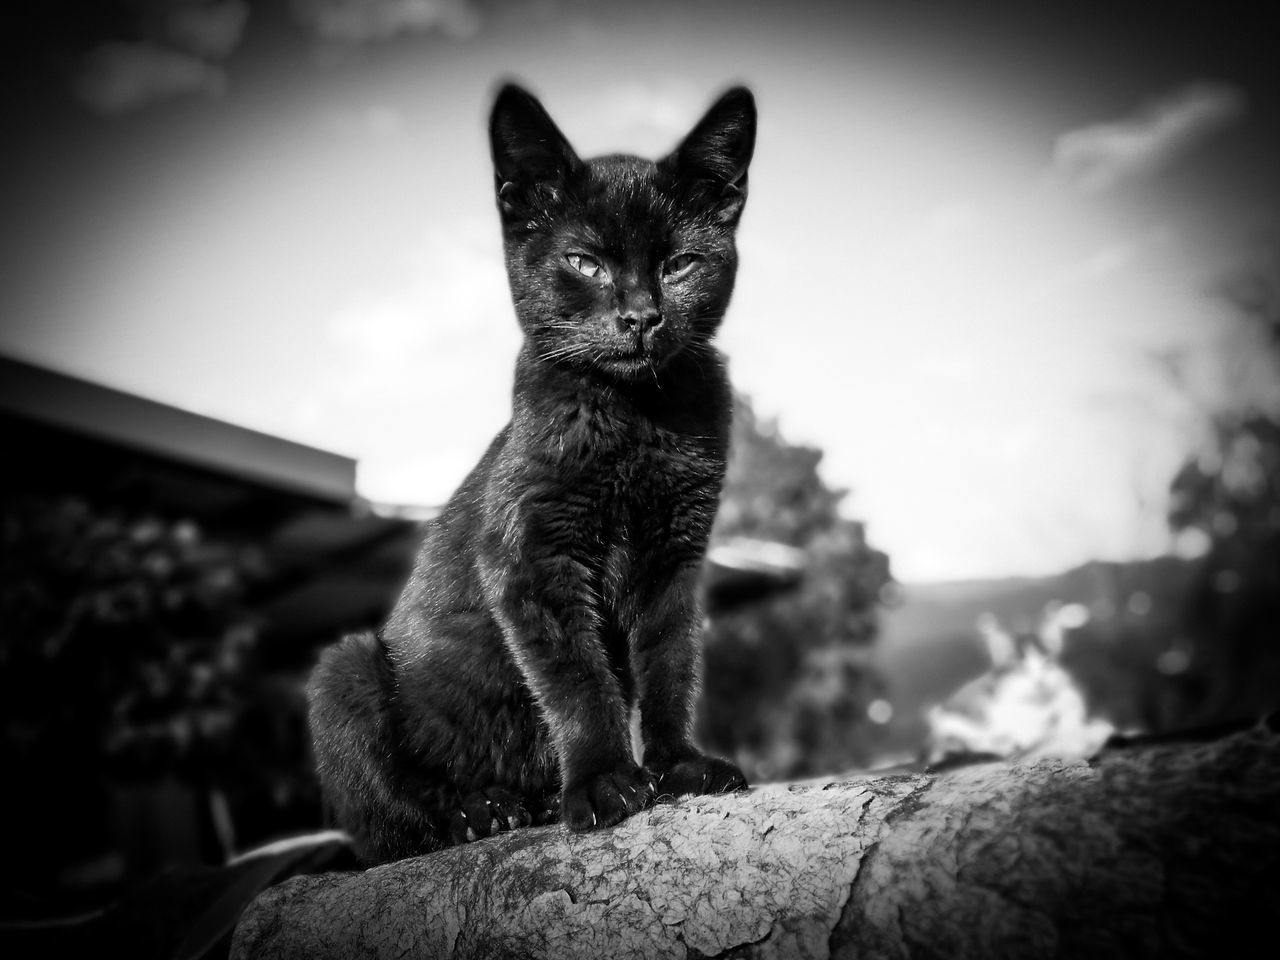 domestic cat, one animal, mammal, animal themes, sitting, feline, pets, looking at camera, no people, sky, portrait, outdoors, domestic animals, day, nature, close-up